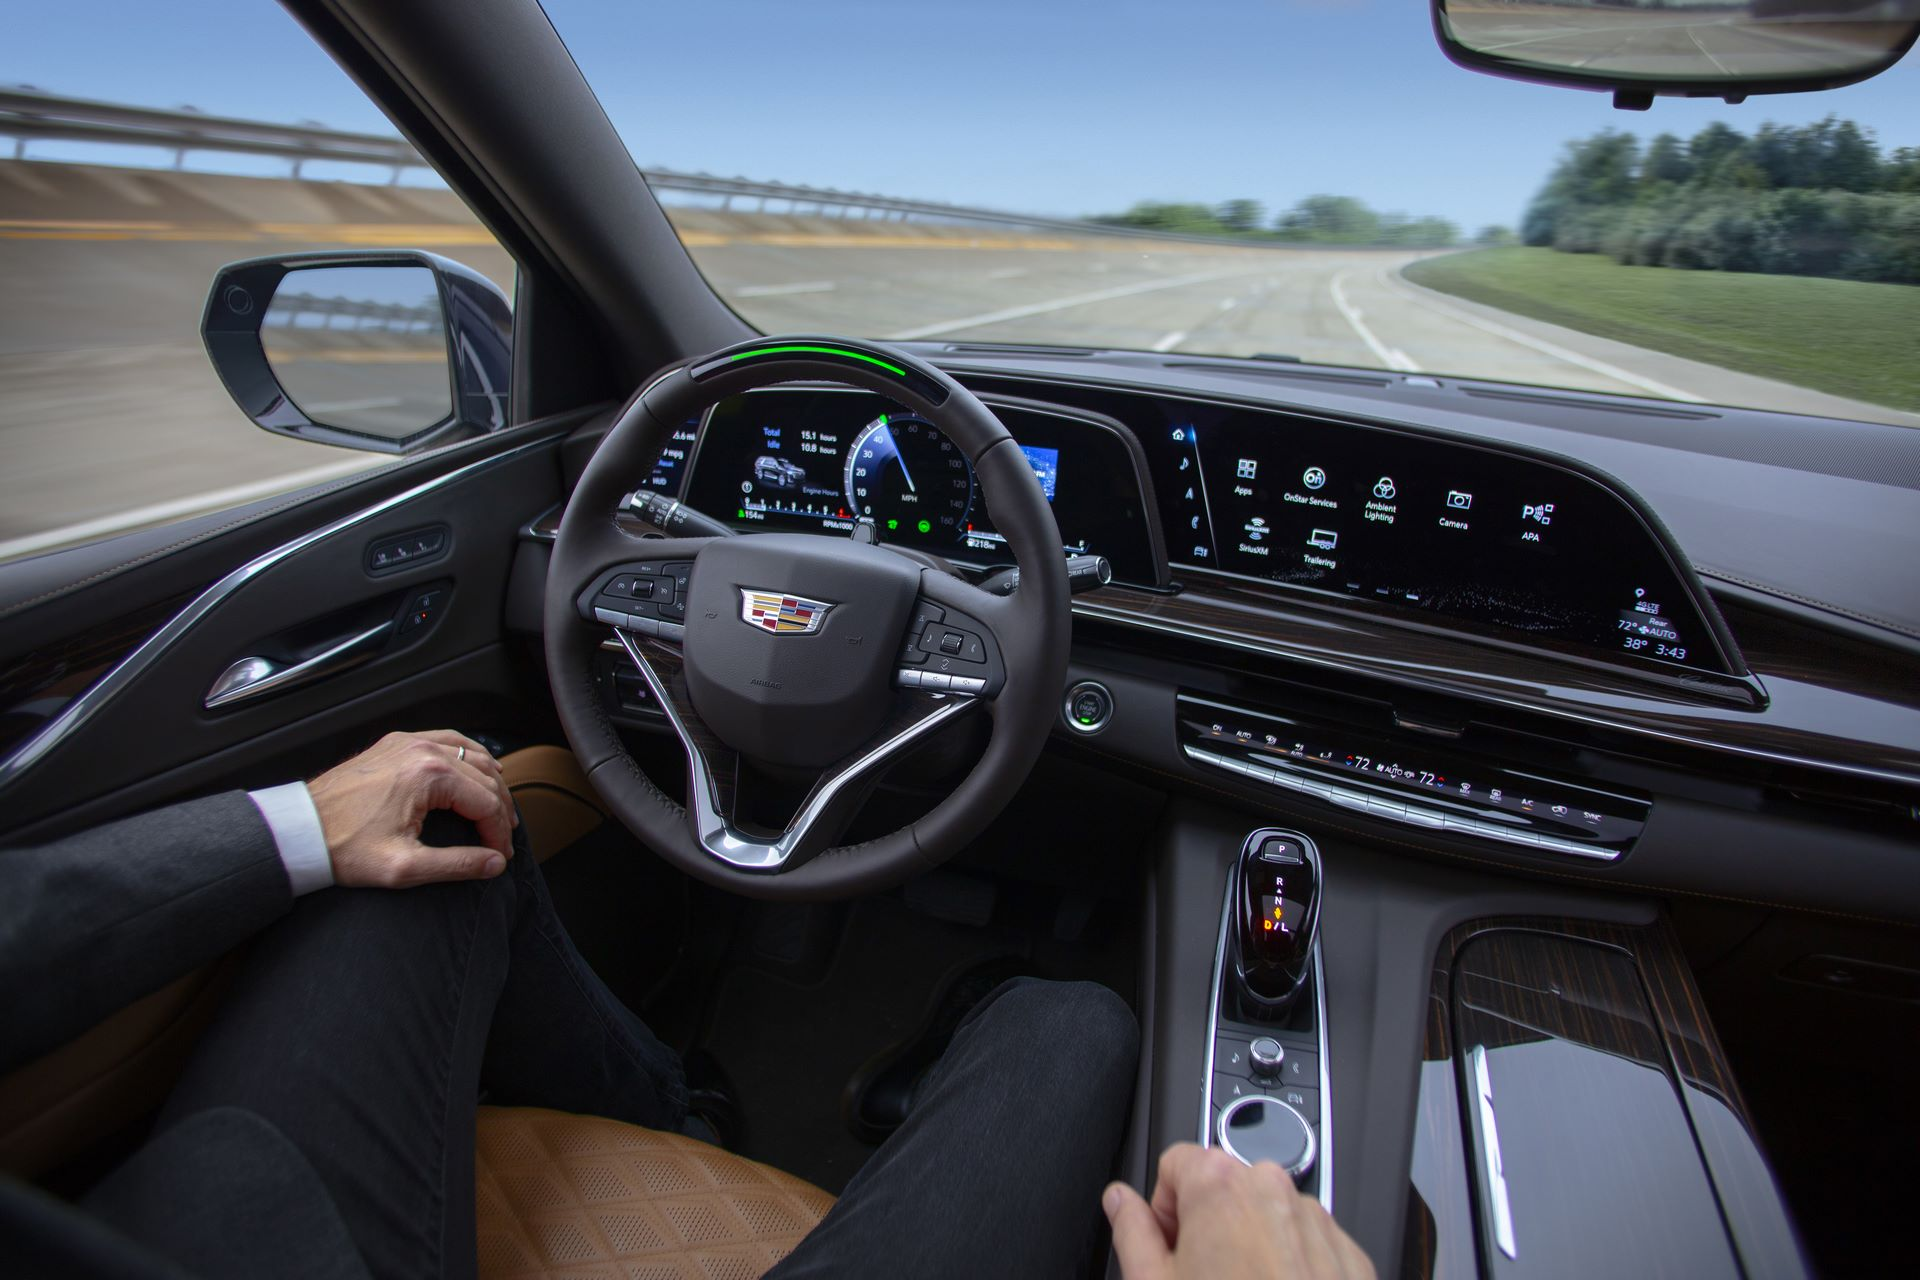 Super Cruise enables hands-free driving on more than 200,000 miles of compatible highways in the United States and Canada.